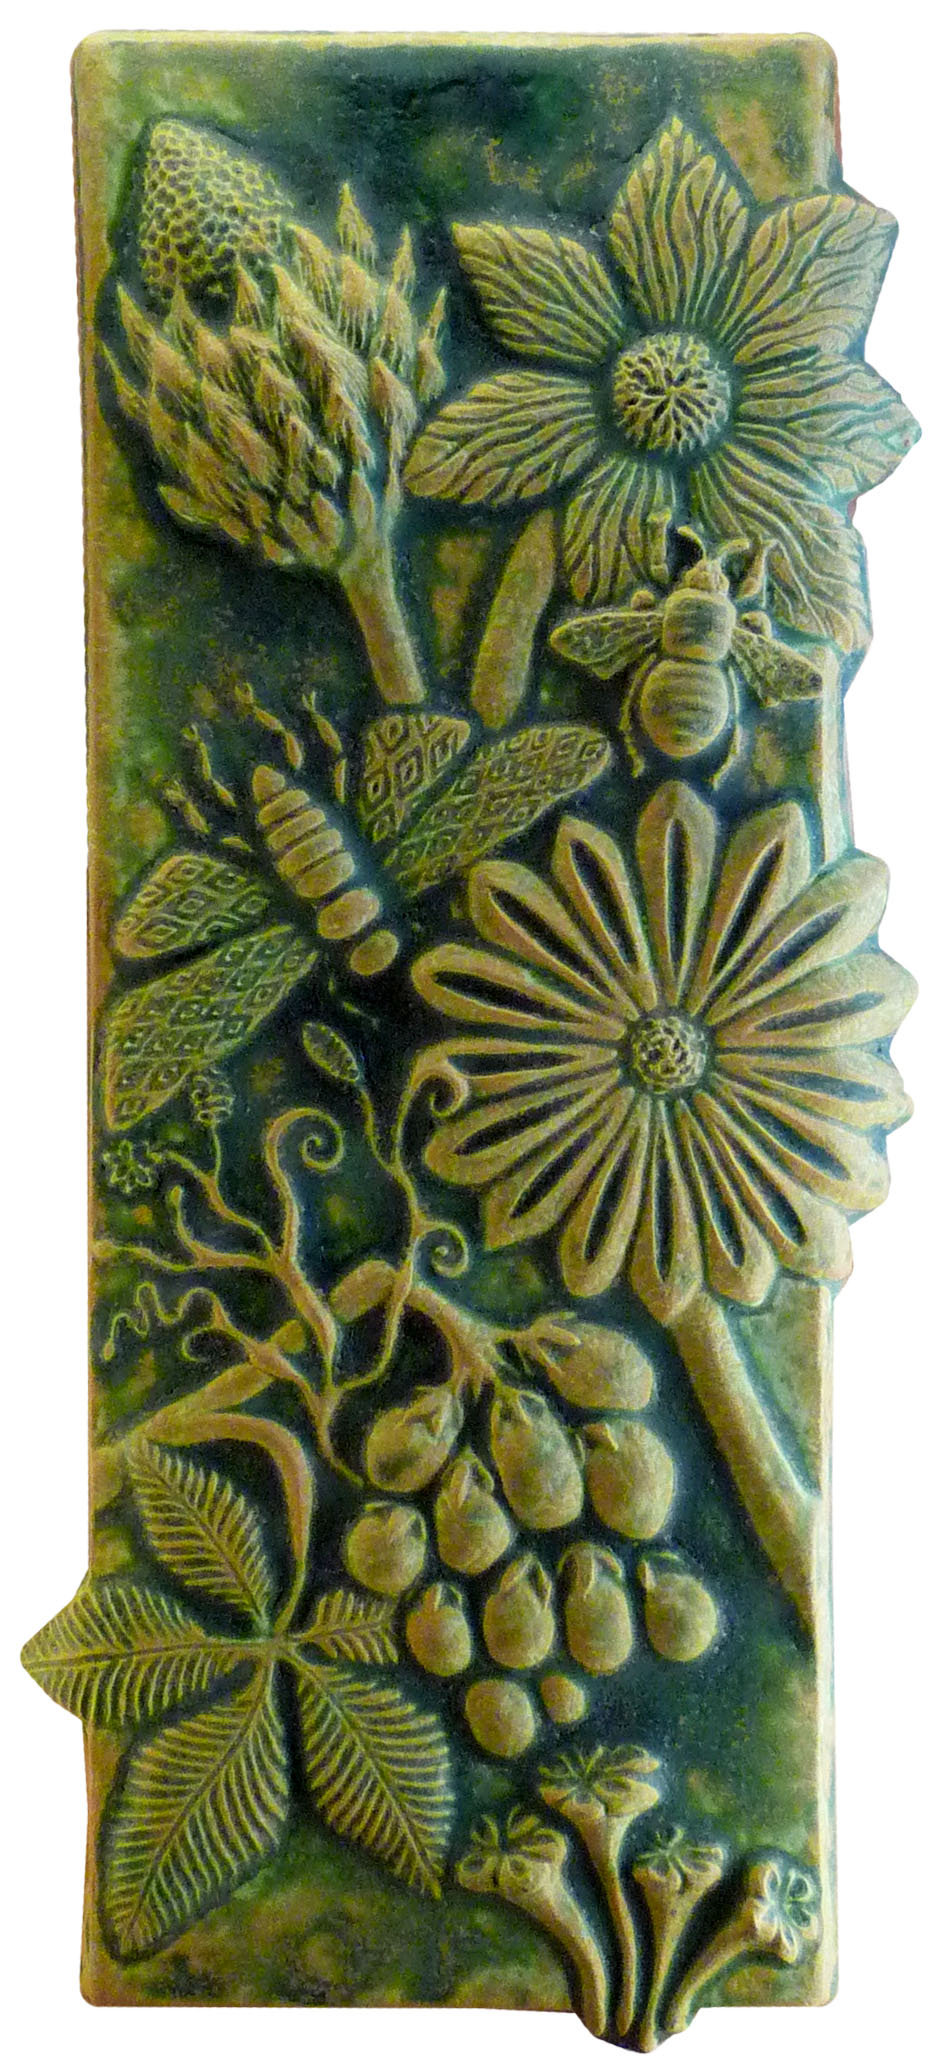 Botanical & Bugs Ceramic Tile in Green Ochre